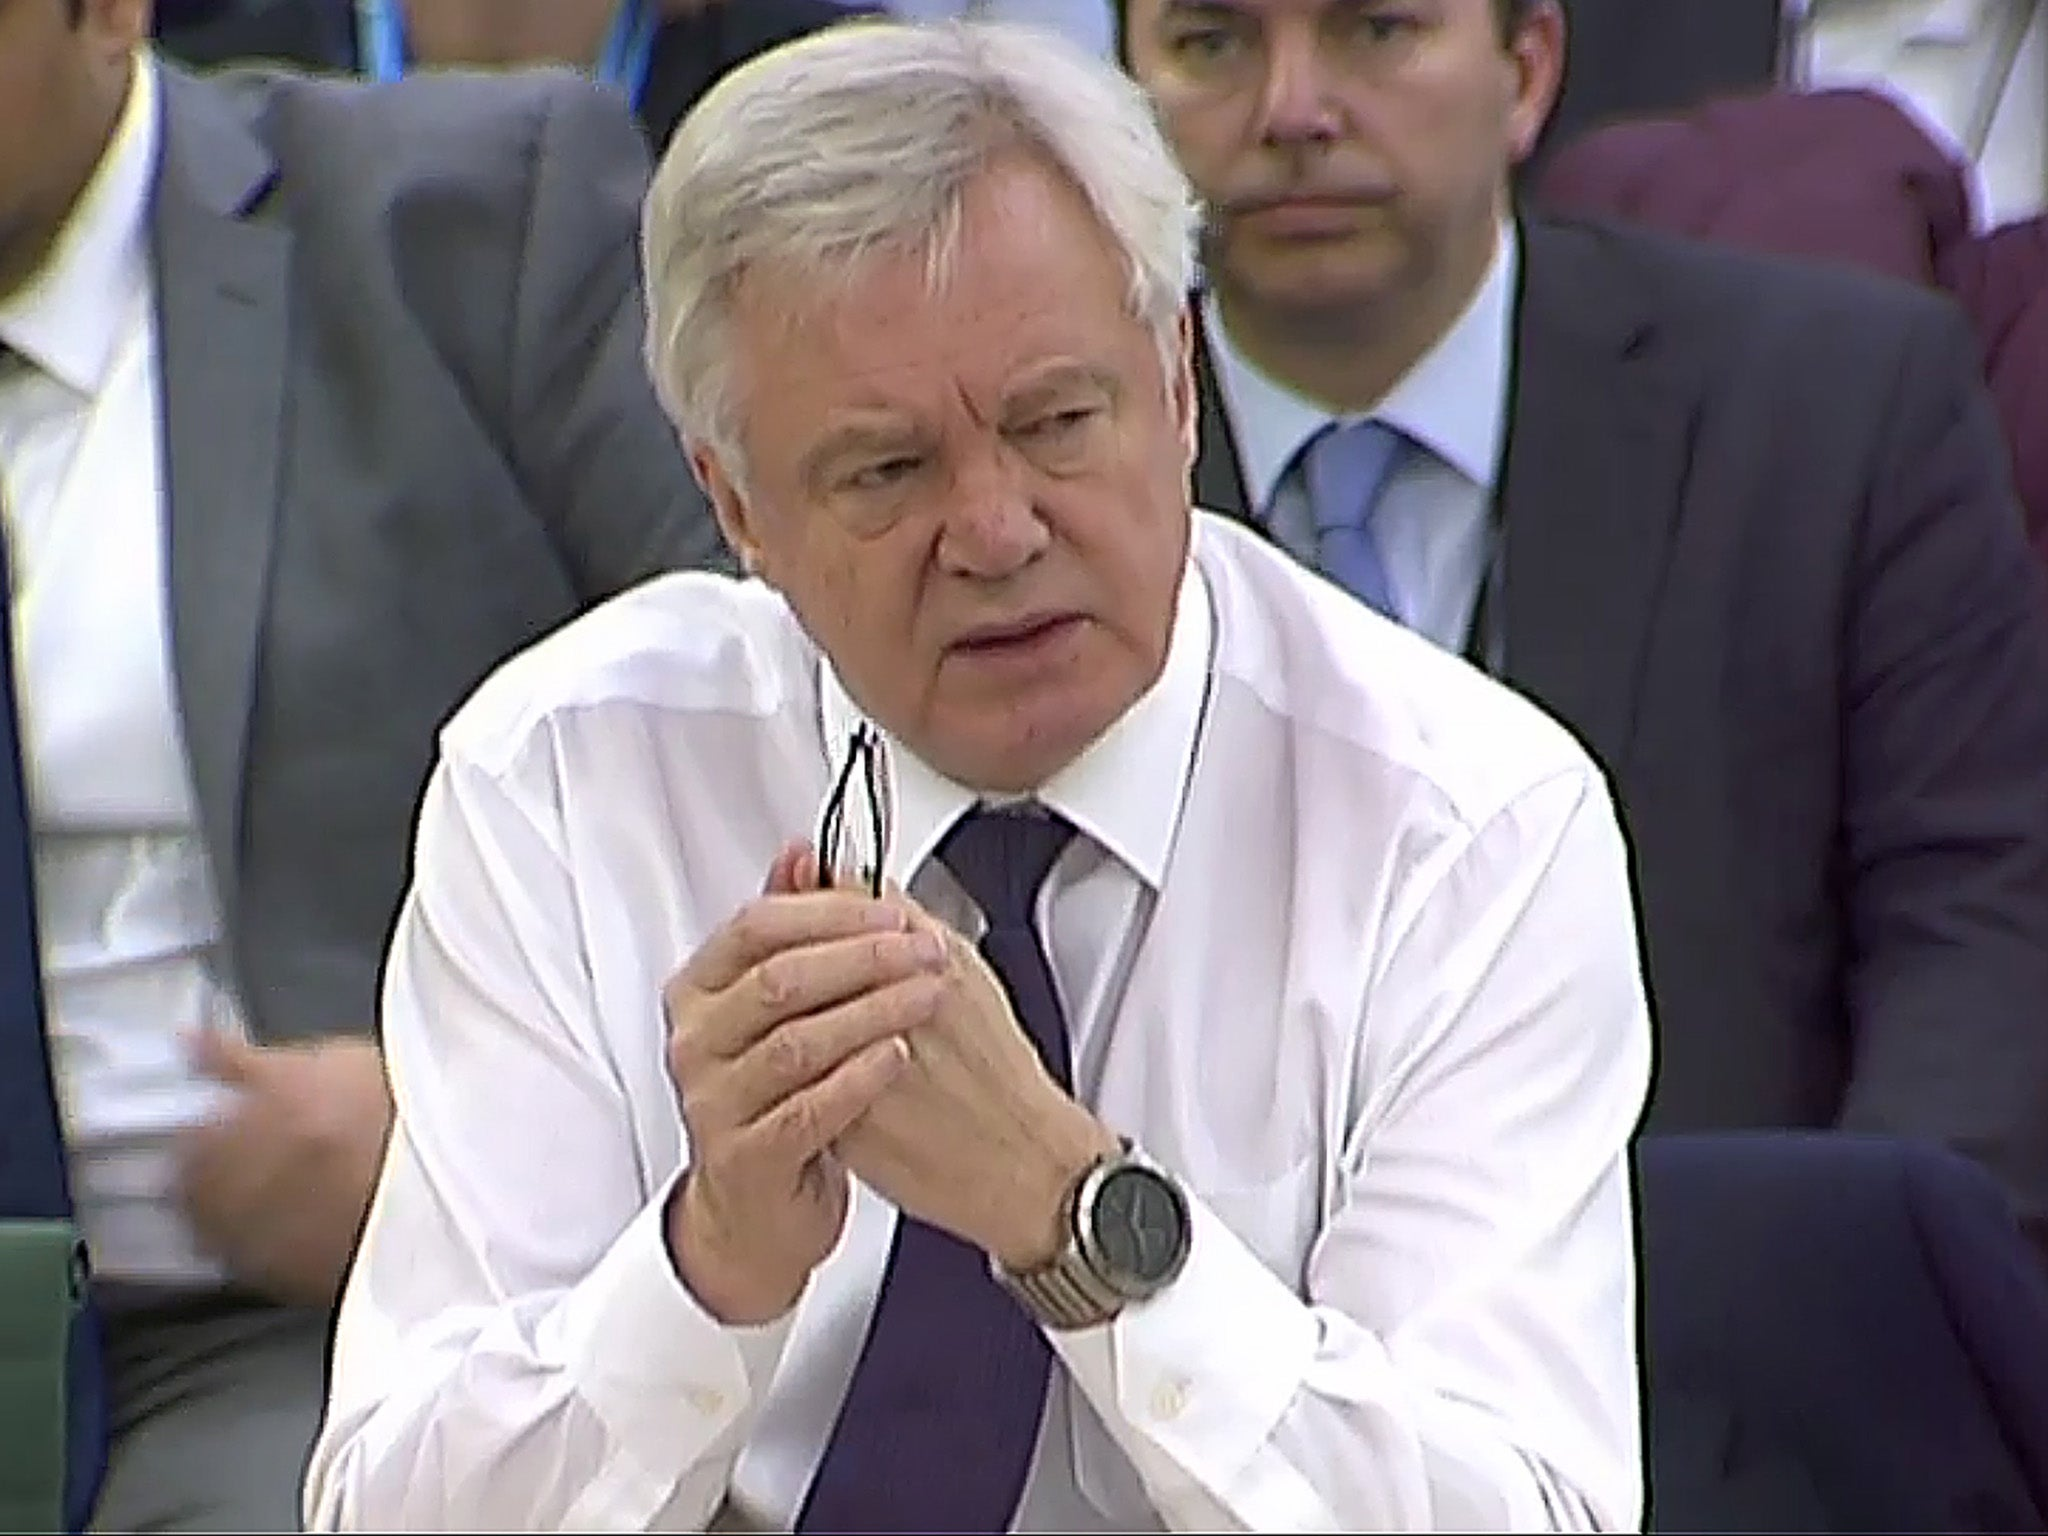 David Davis 'risks undermining good faith' in Brexit negotiations, angry European Parliament warns